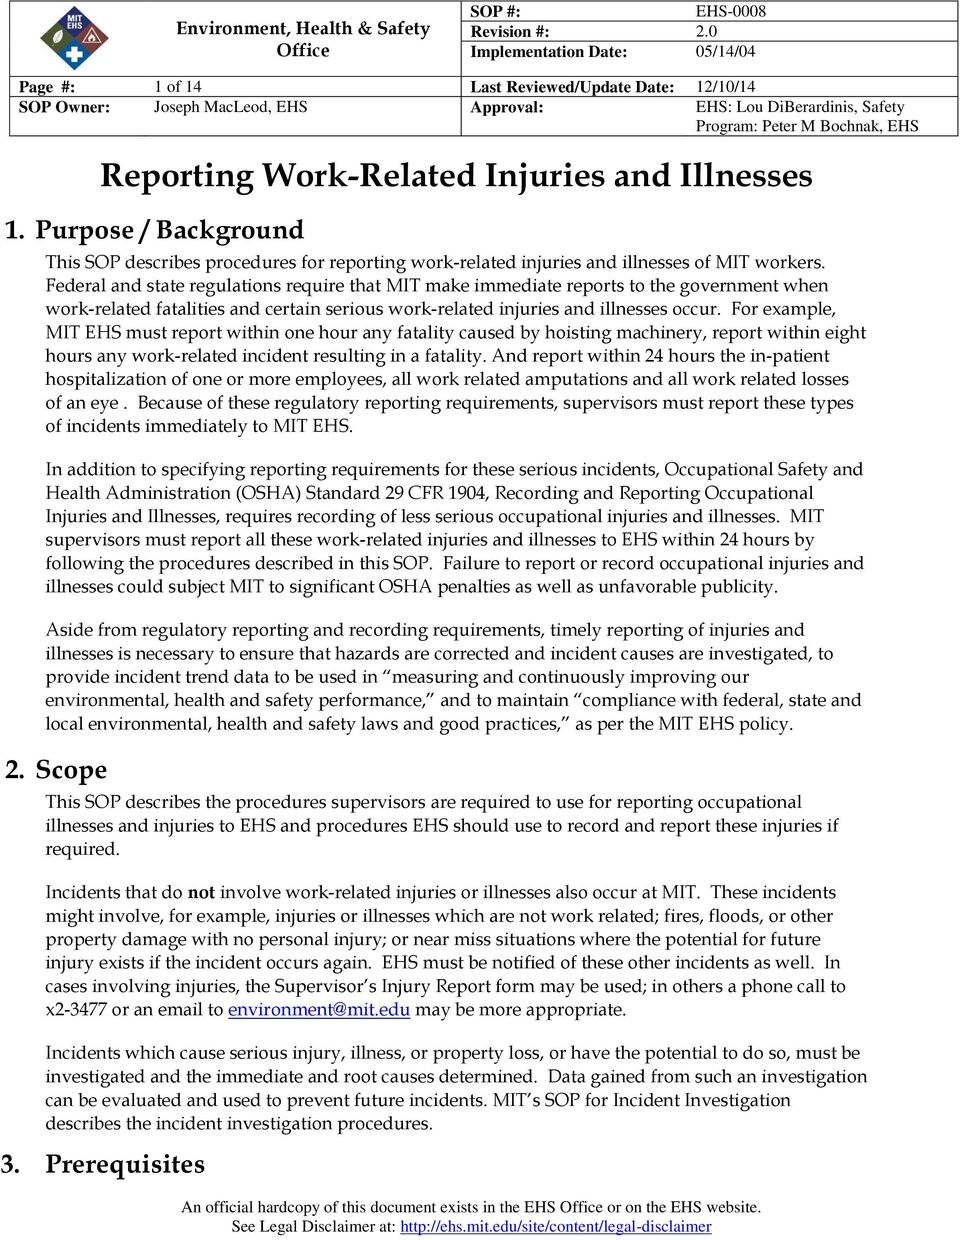 Federal and state regulations require that MIT make immediate reports to the government when work-related fatalities and certain serious work-related injuries and illnesses occur.